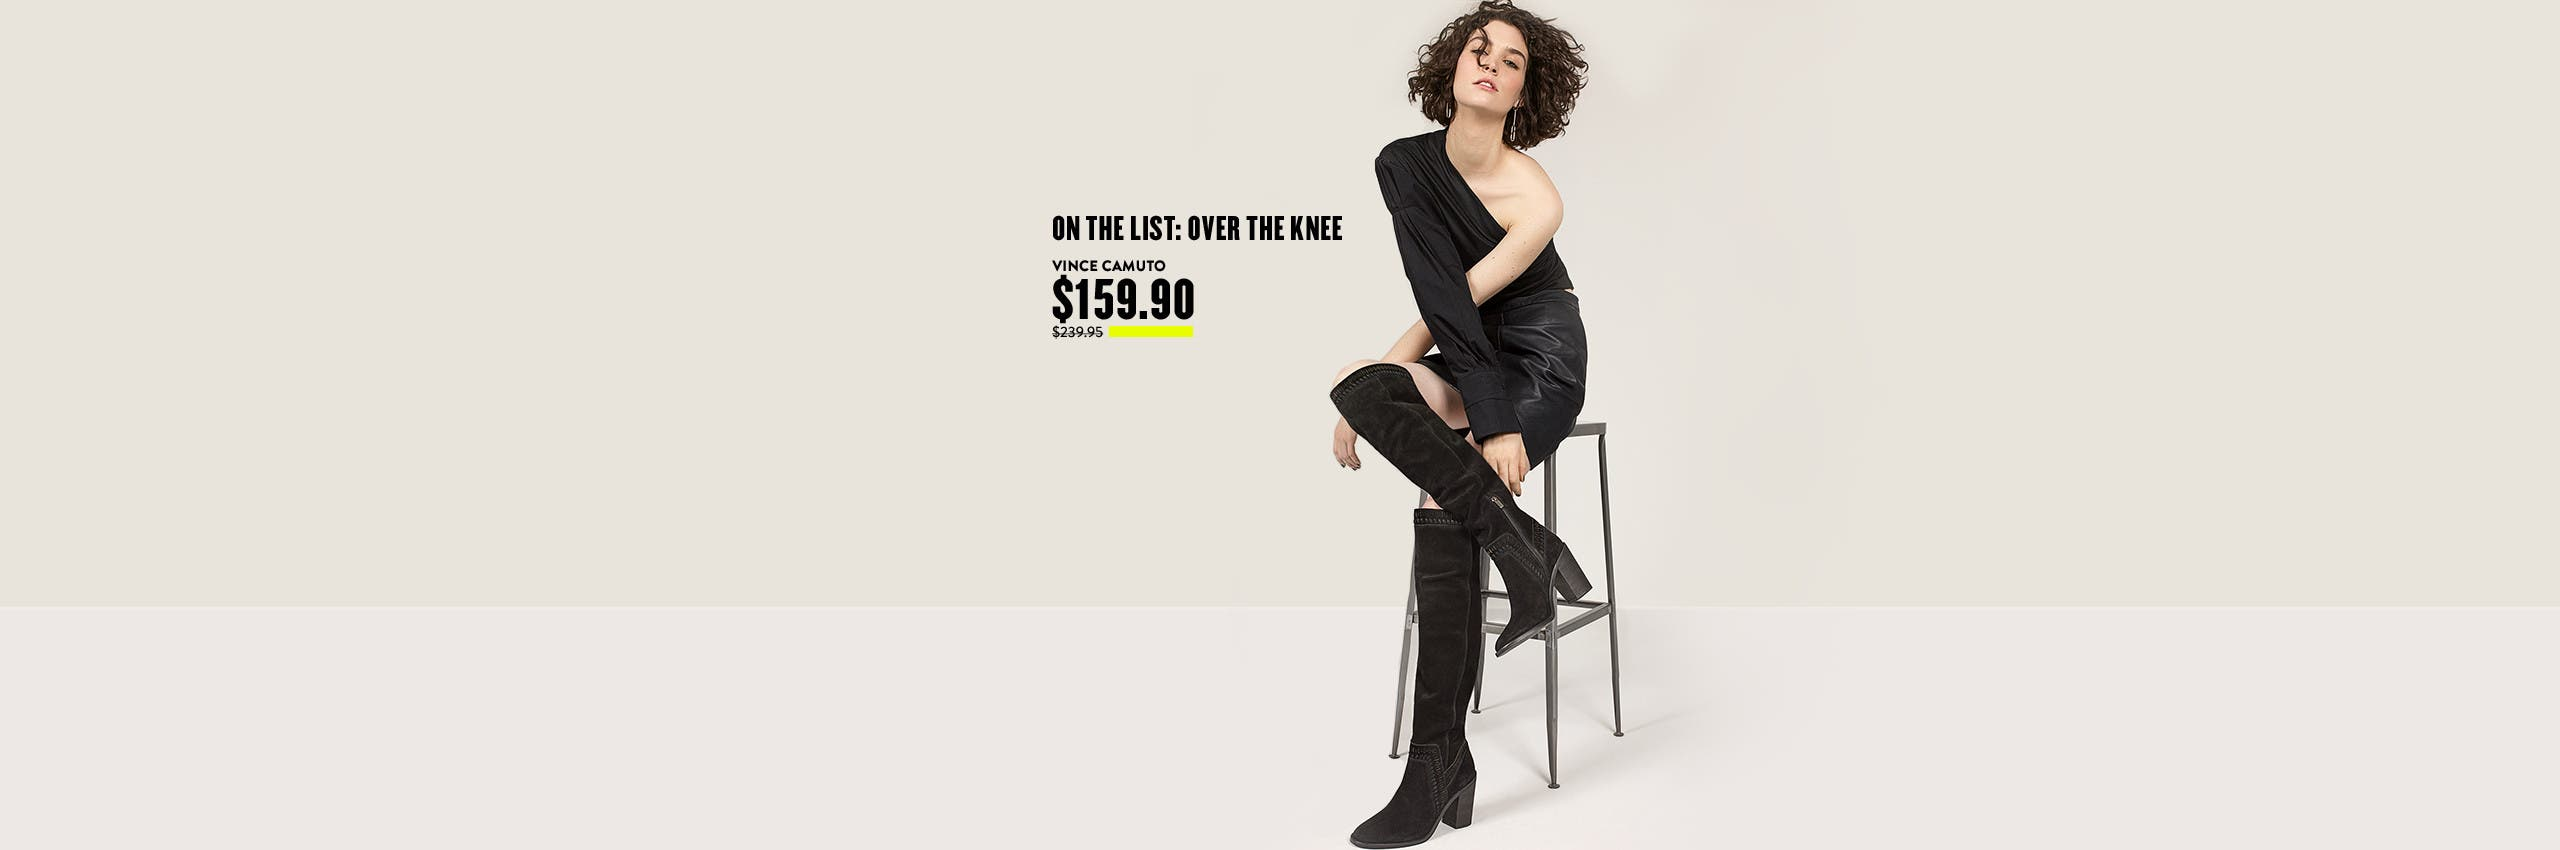 On the Anniversary Sale list: over-the-knee boots.